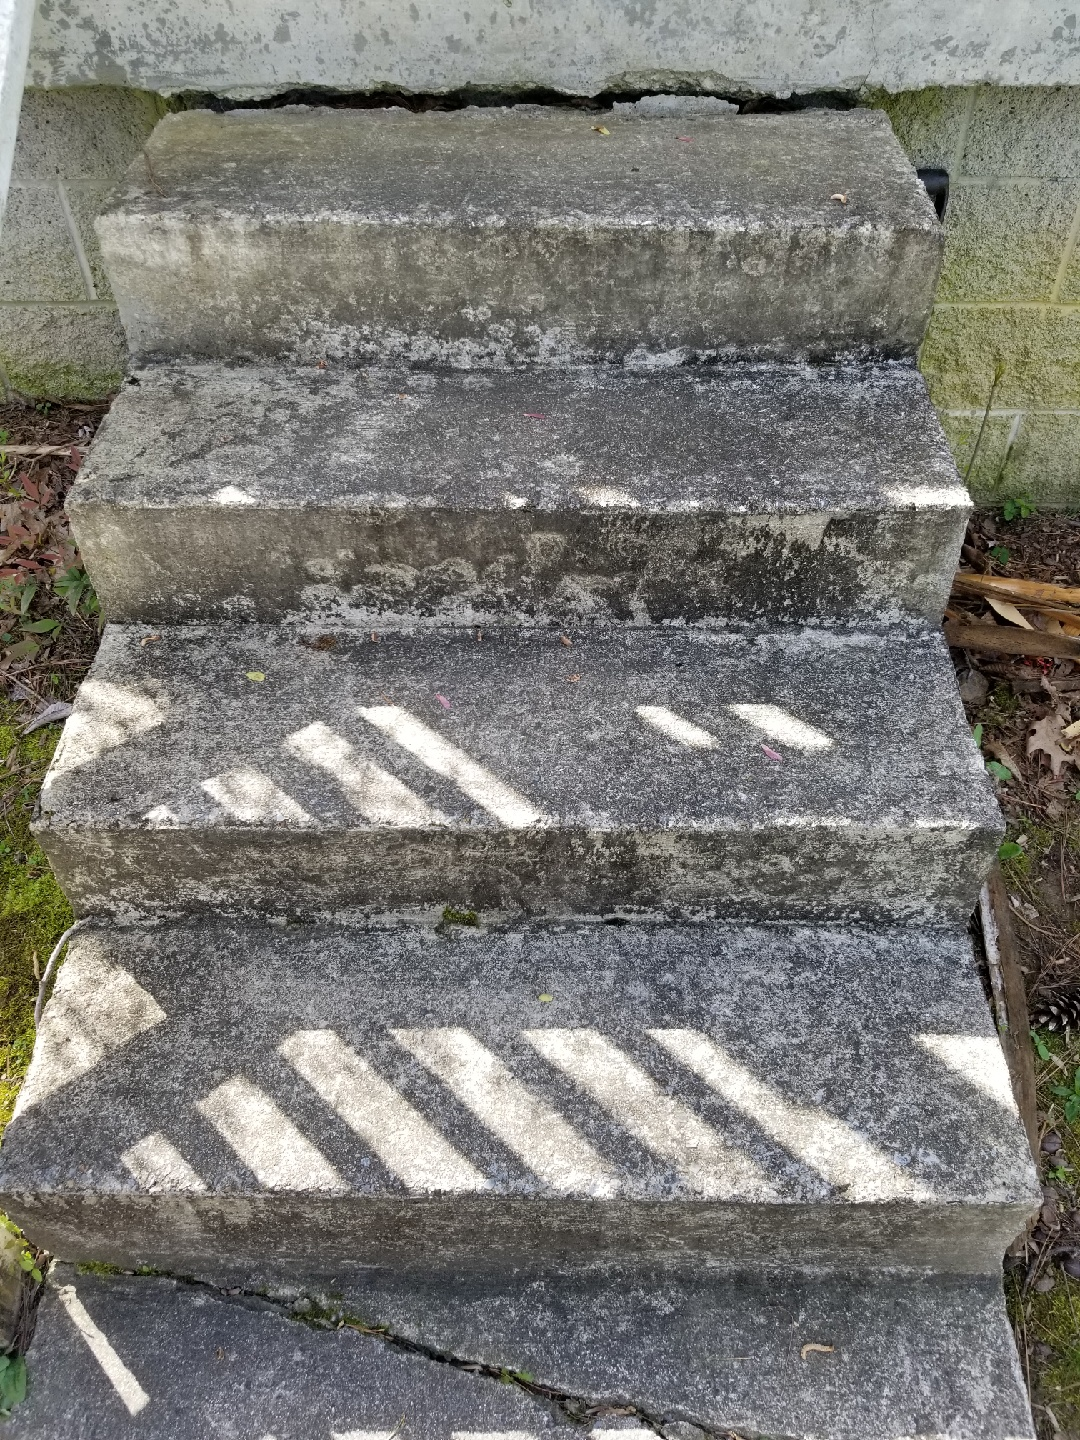 Wear & tear, dirt, and time makes these stairs look worn down!